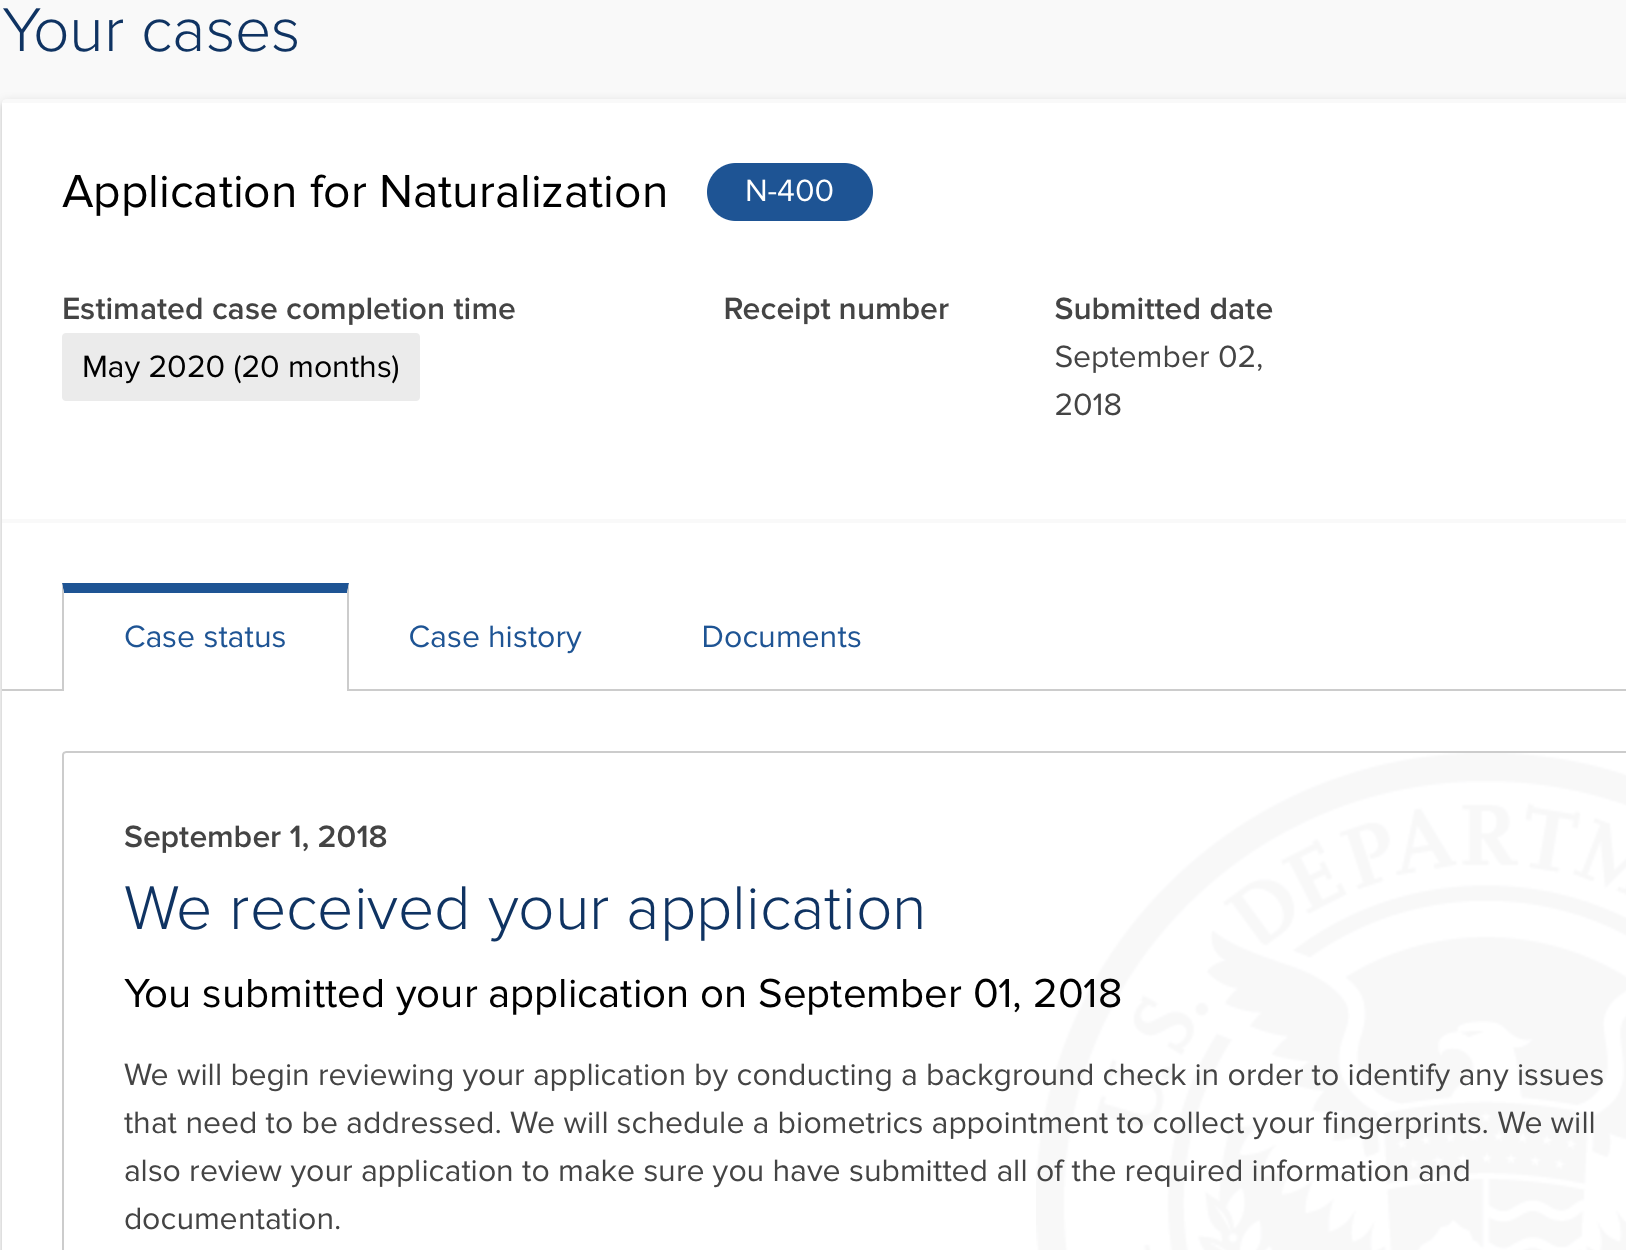 N-400 September 2018 Filers - US Citizenship Case Filing and